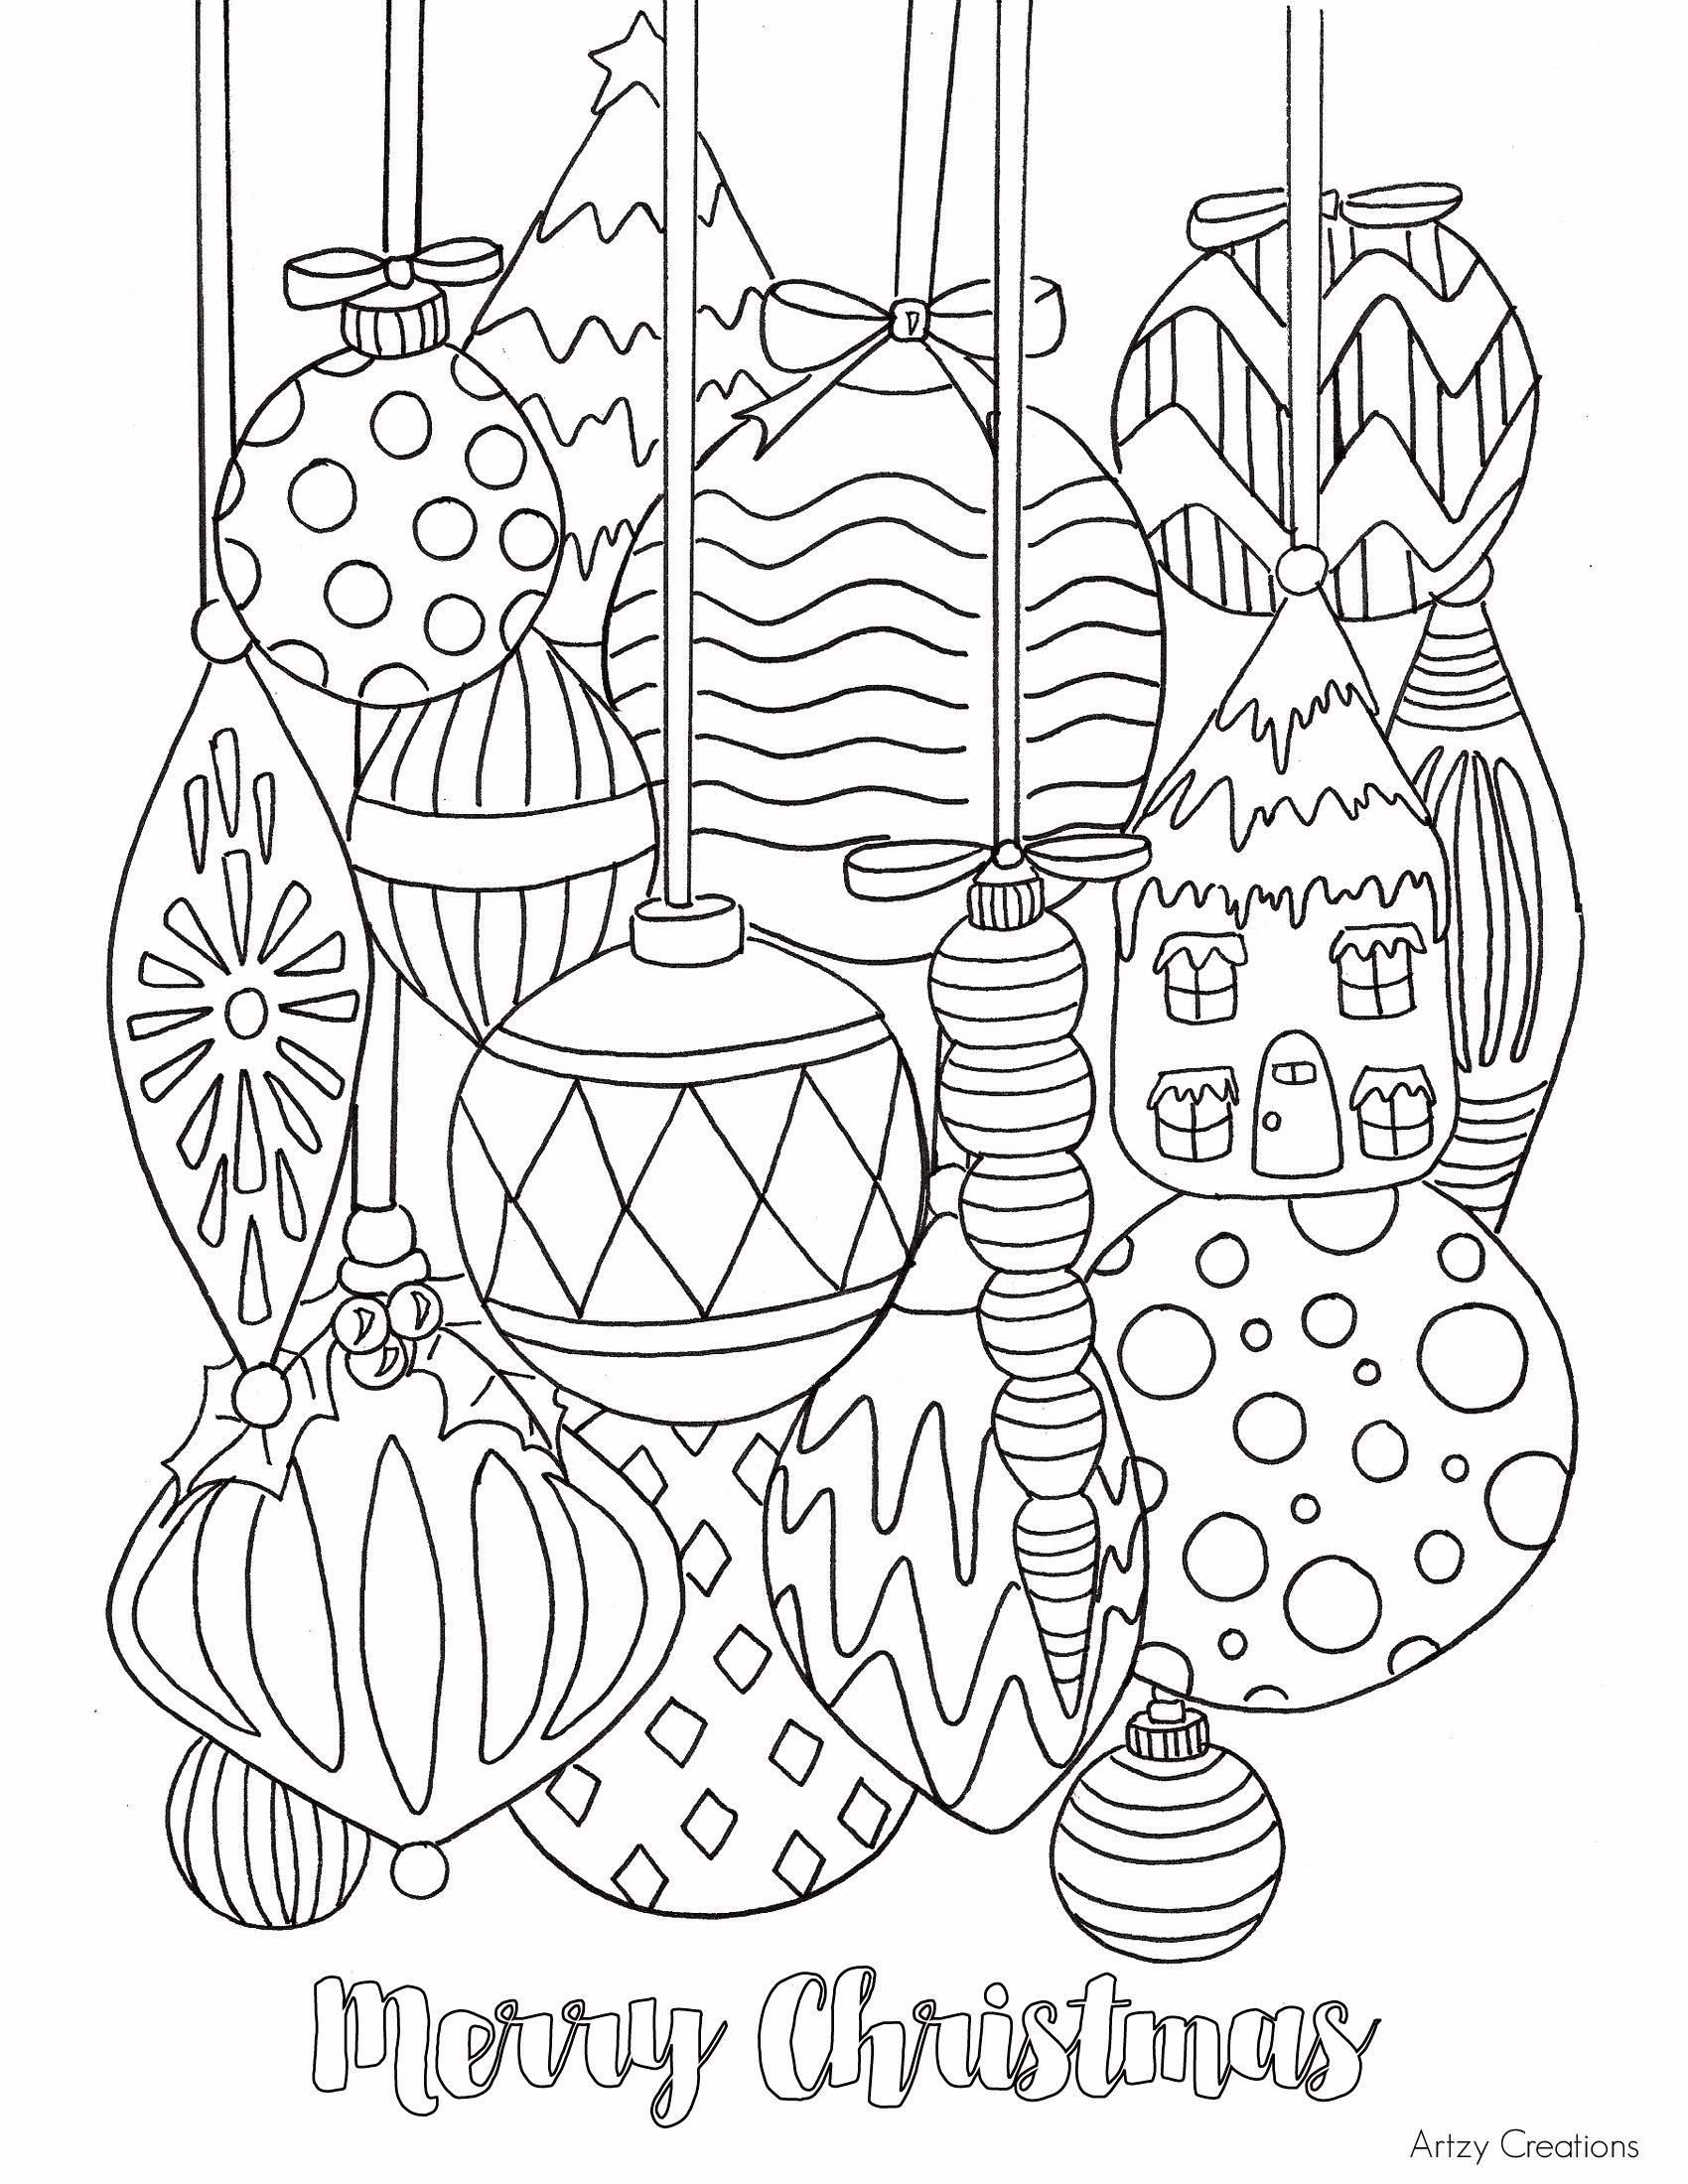 76 Luxury Image Of Thanksgiving Coloring Pages Free Printable Printable Christmas Coloring Pages Free Christmas Coloring Pages Christmas Tree Coloring Page